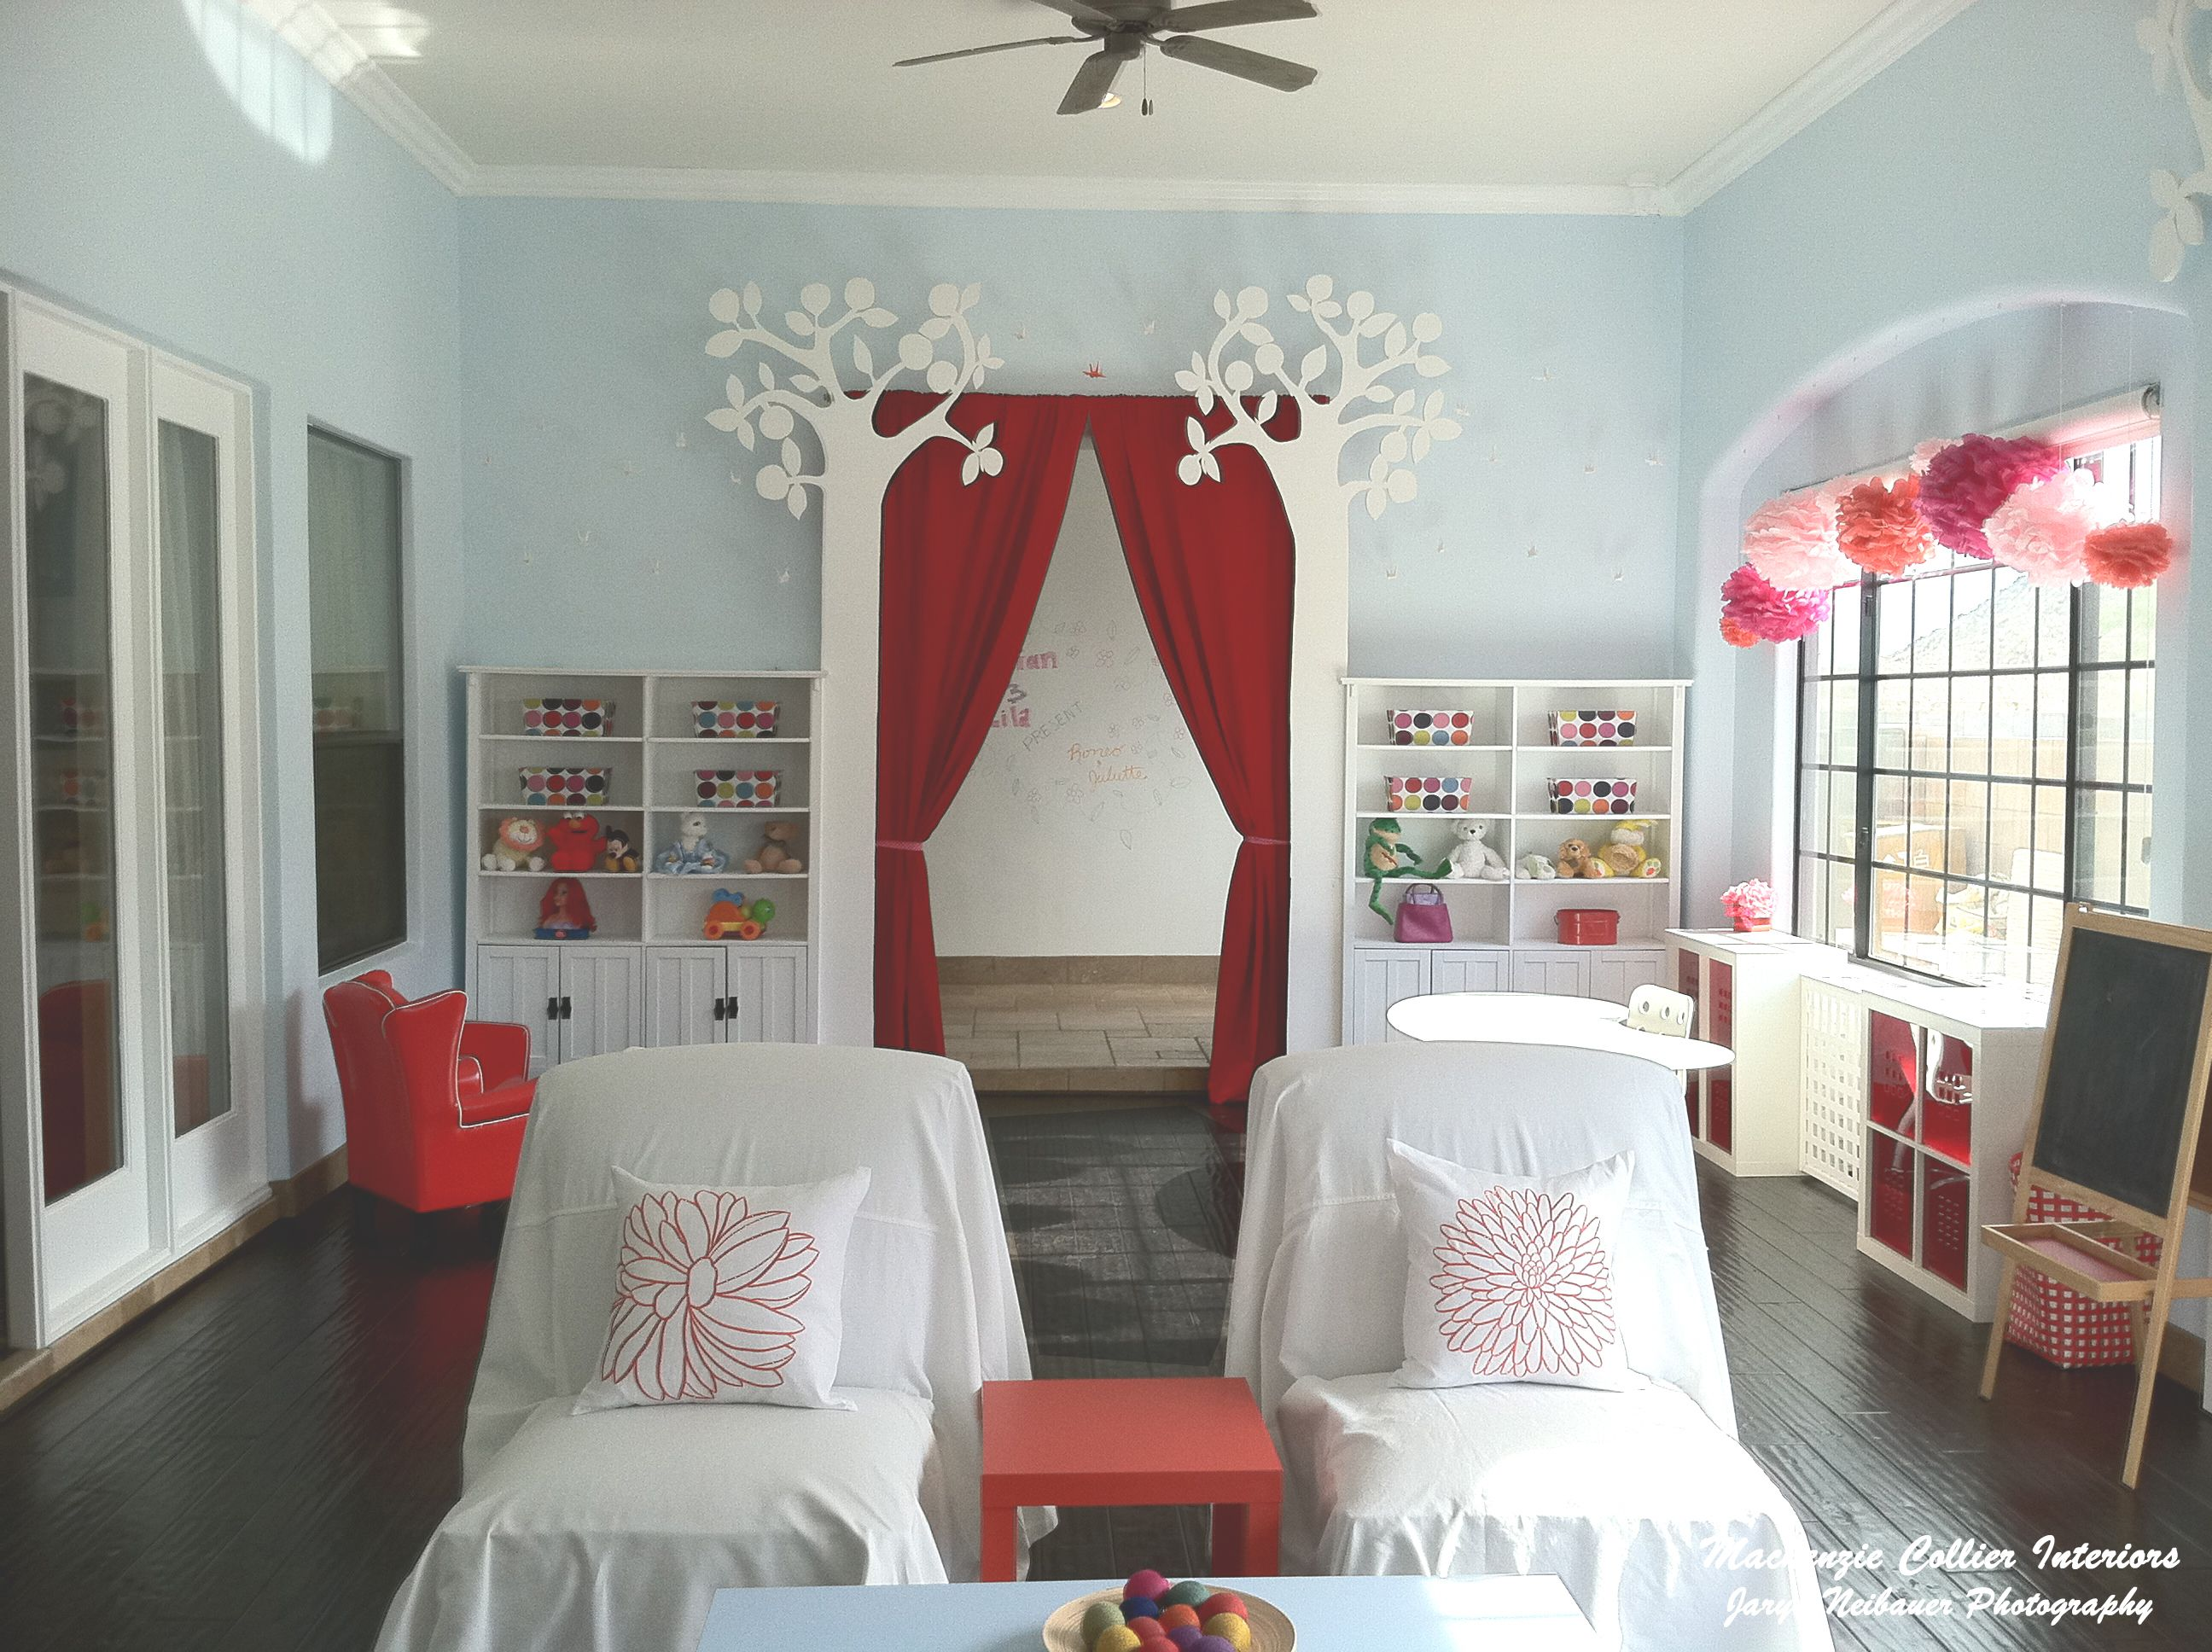 Playroom by Mackenzie Collier Interiors